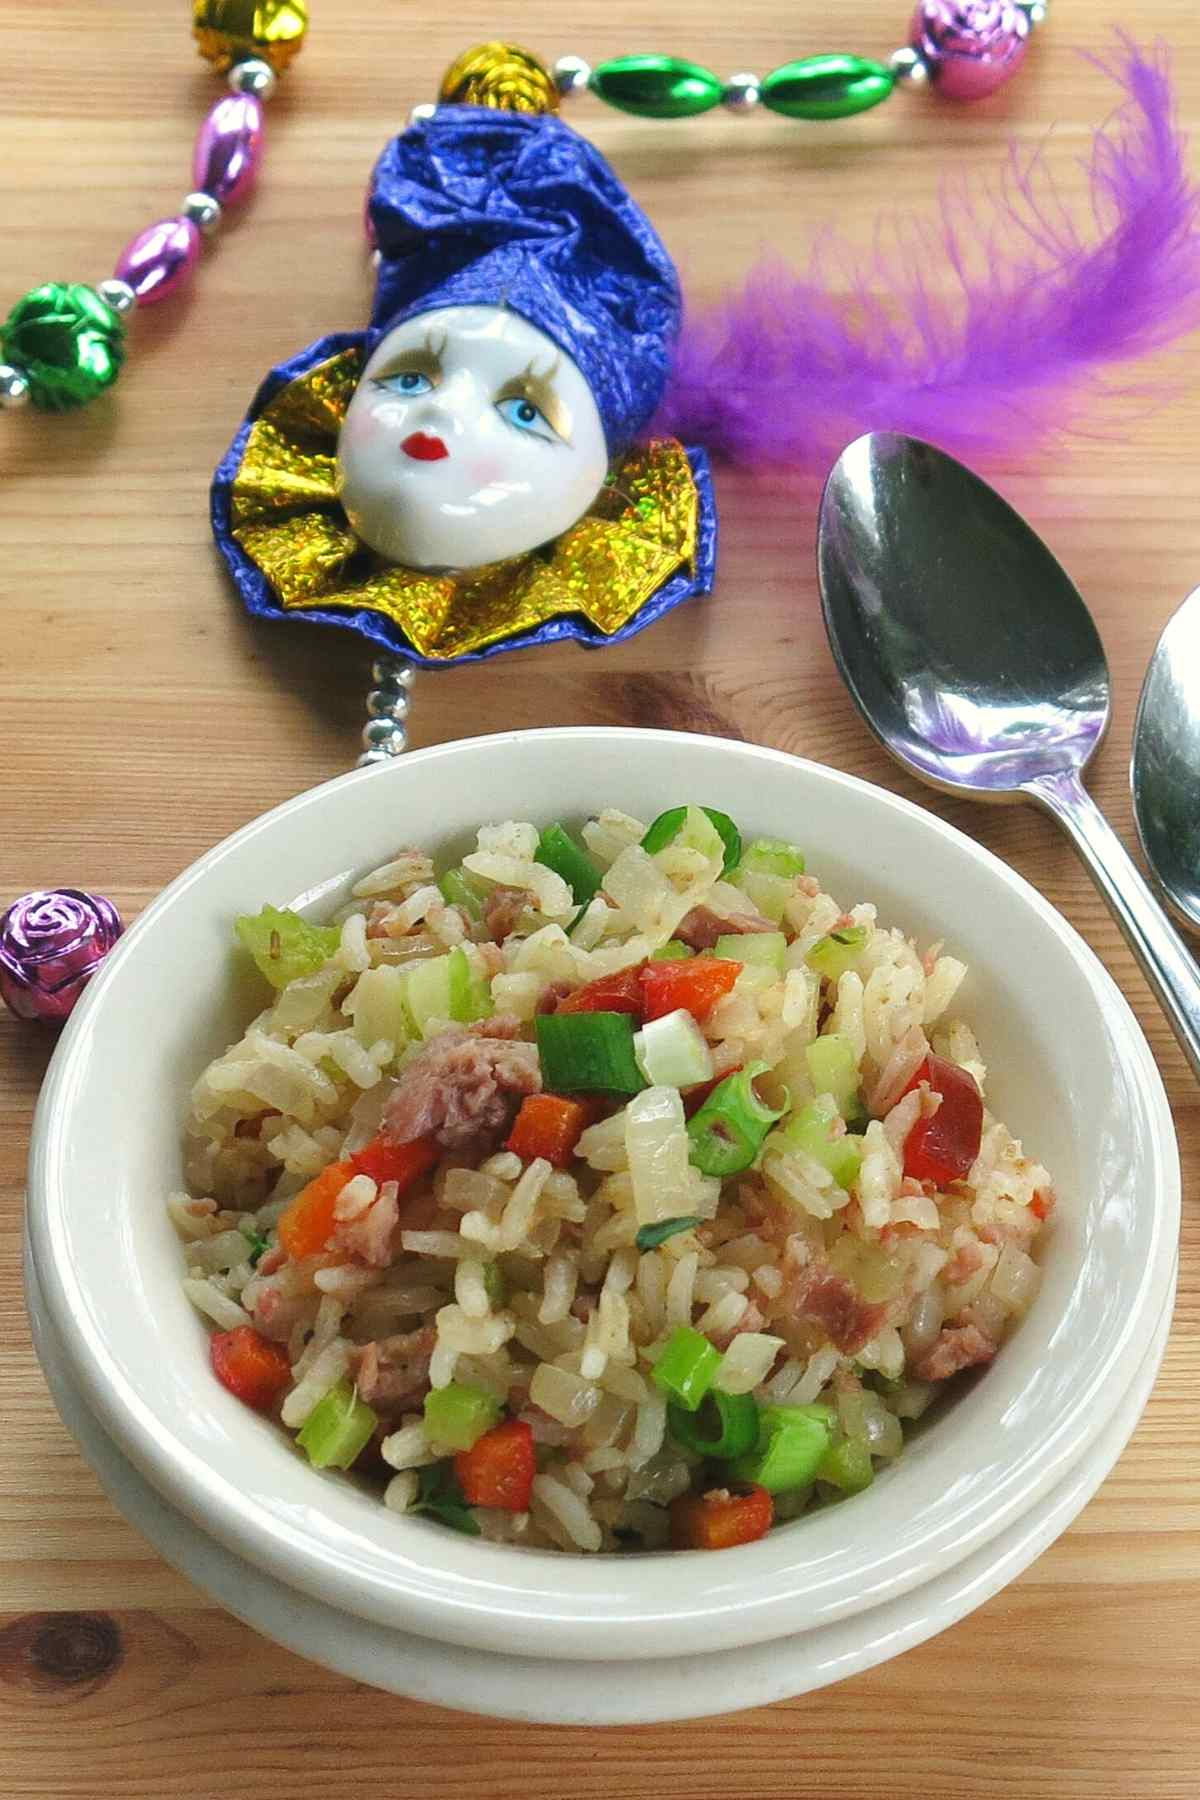 Side dish of recipe with spoons and Mardi Gras beads in the background.